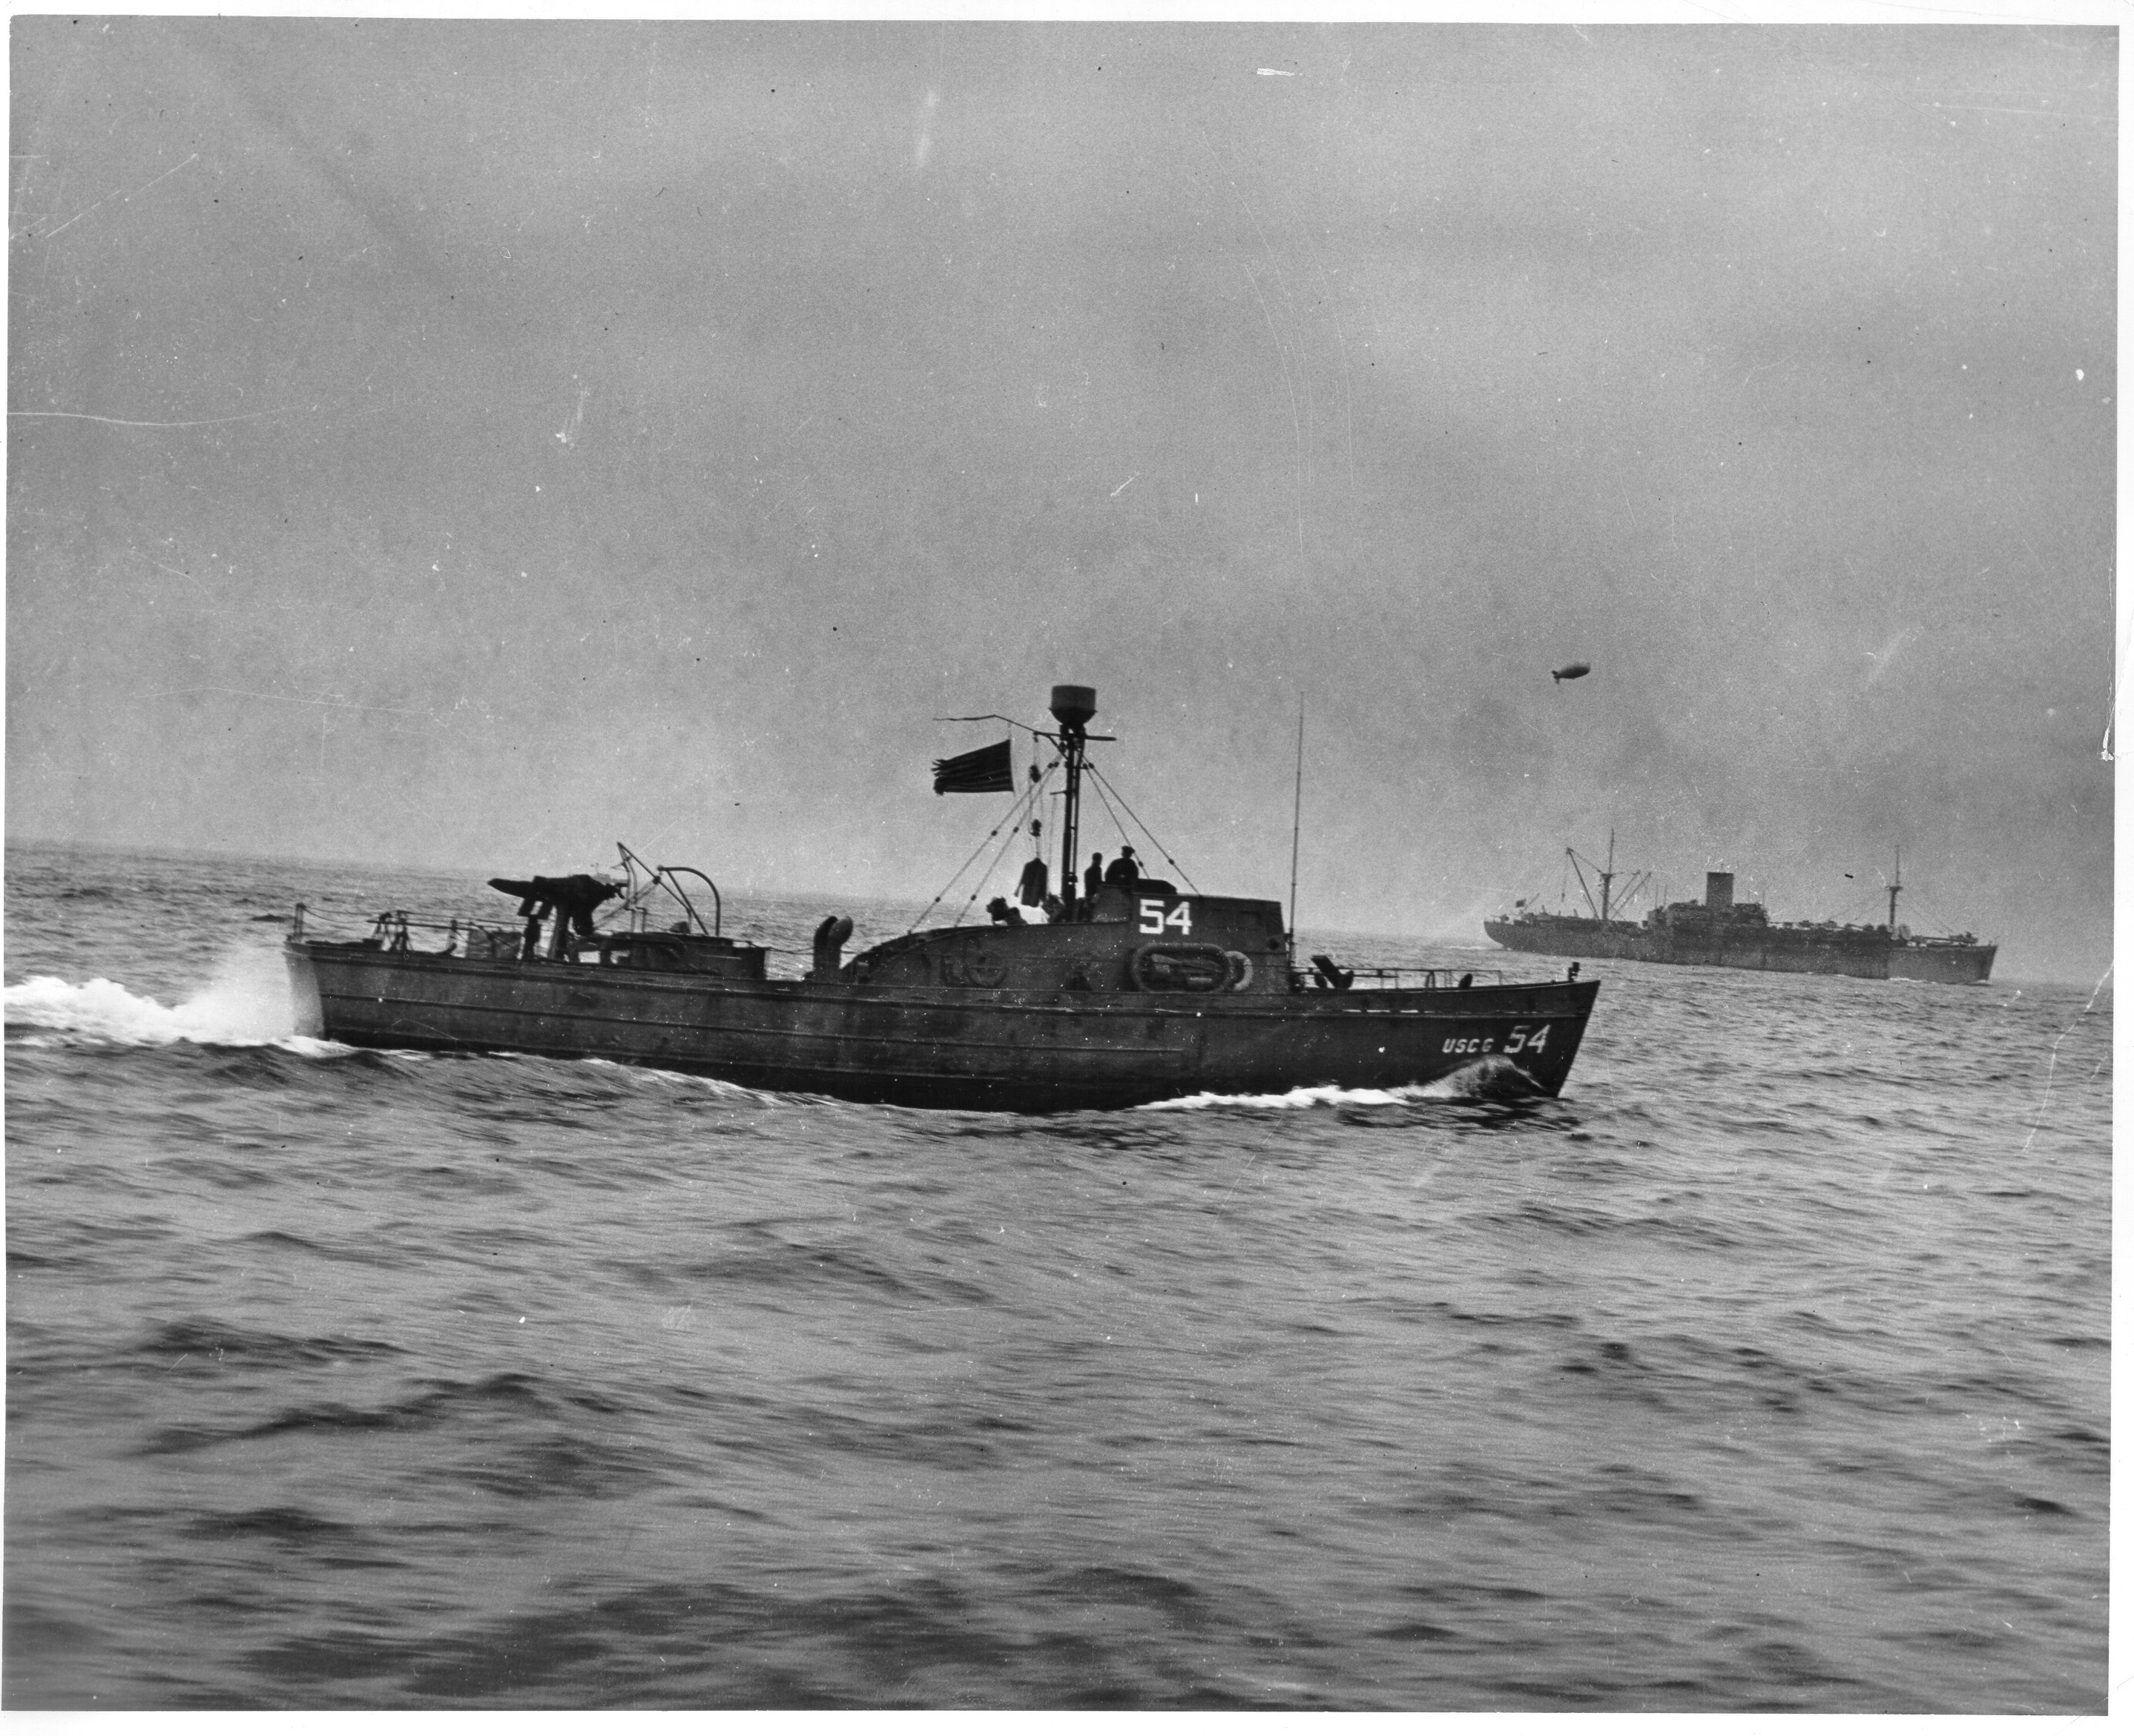 83 foot patrol boat CG-624, later renamed CG-14 as part of Rescue Flotilla One, Normandy